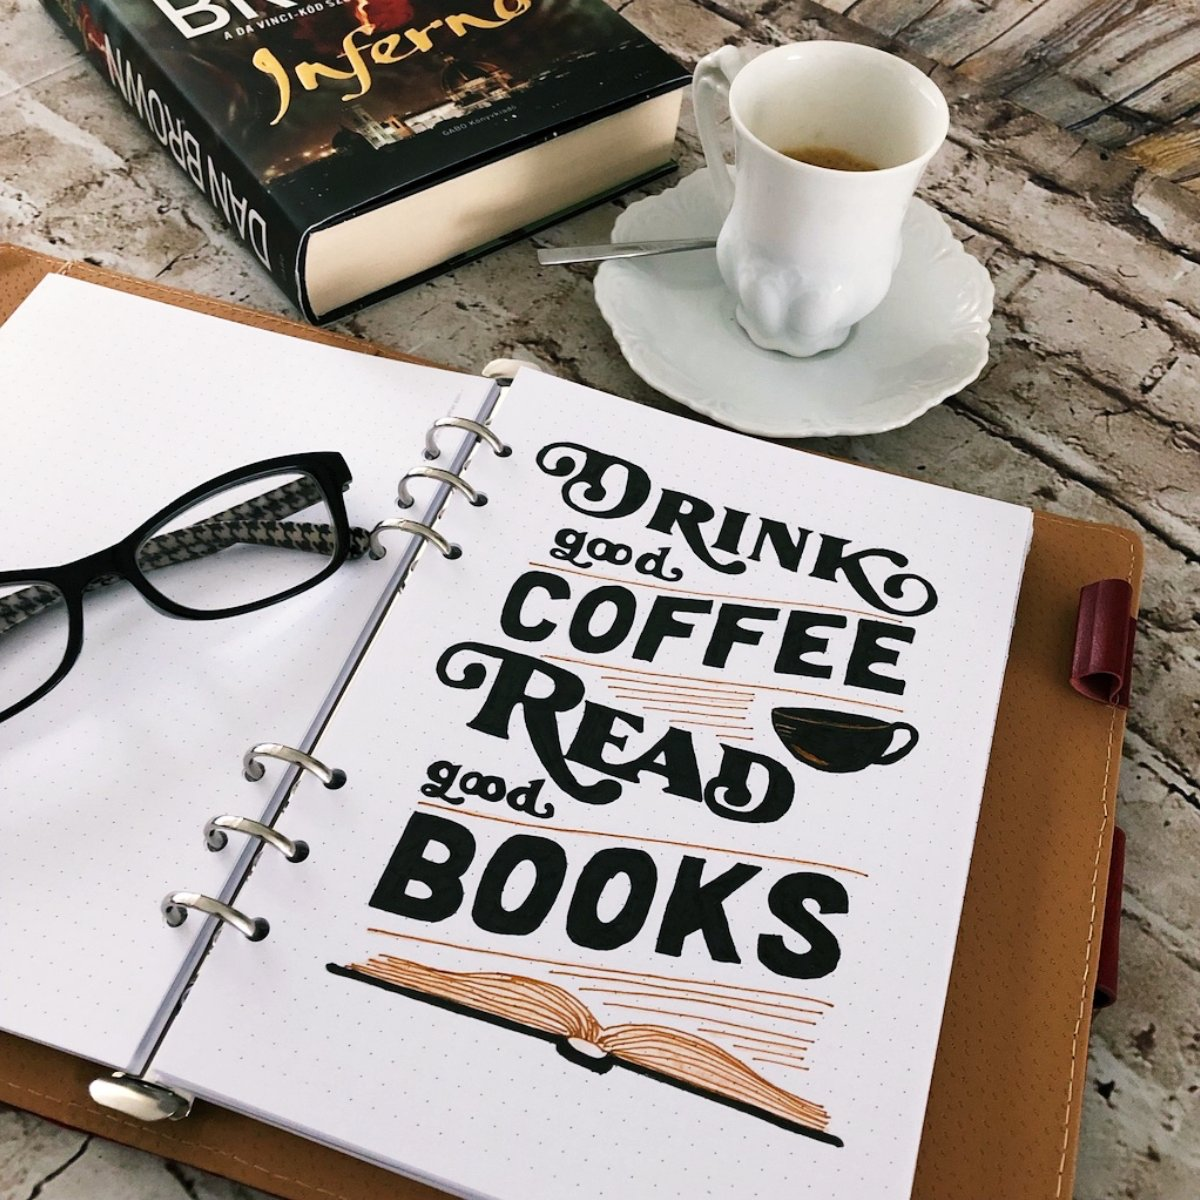 Bullet journal quotes - Drink good coffee read good books - itstartswithacoffee.com #bulletjournal #quotes #bulletjournaling #lettering #coffee #books